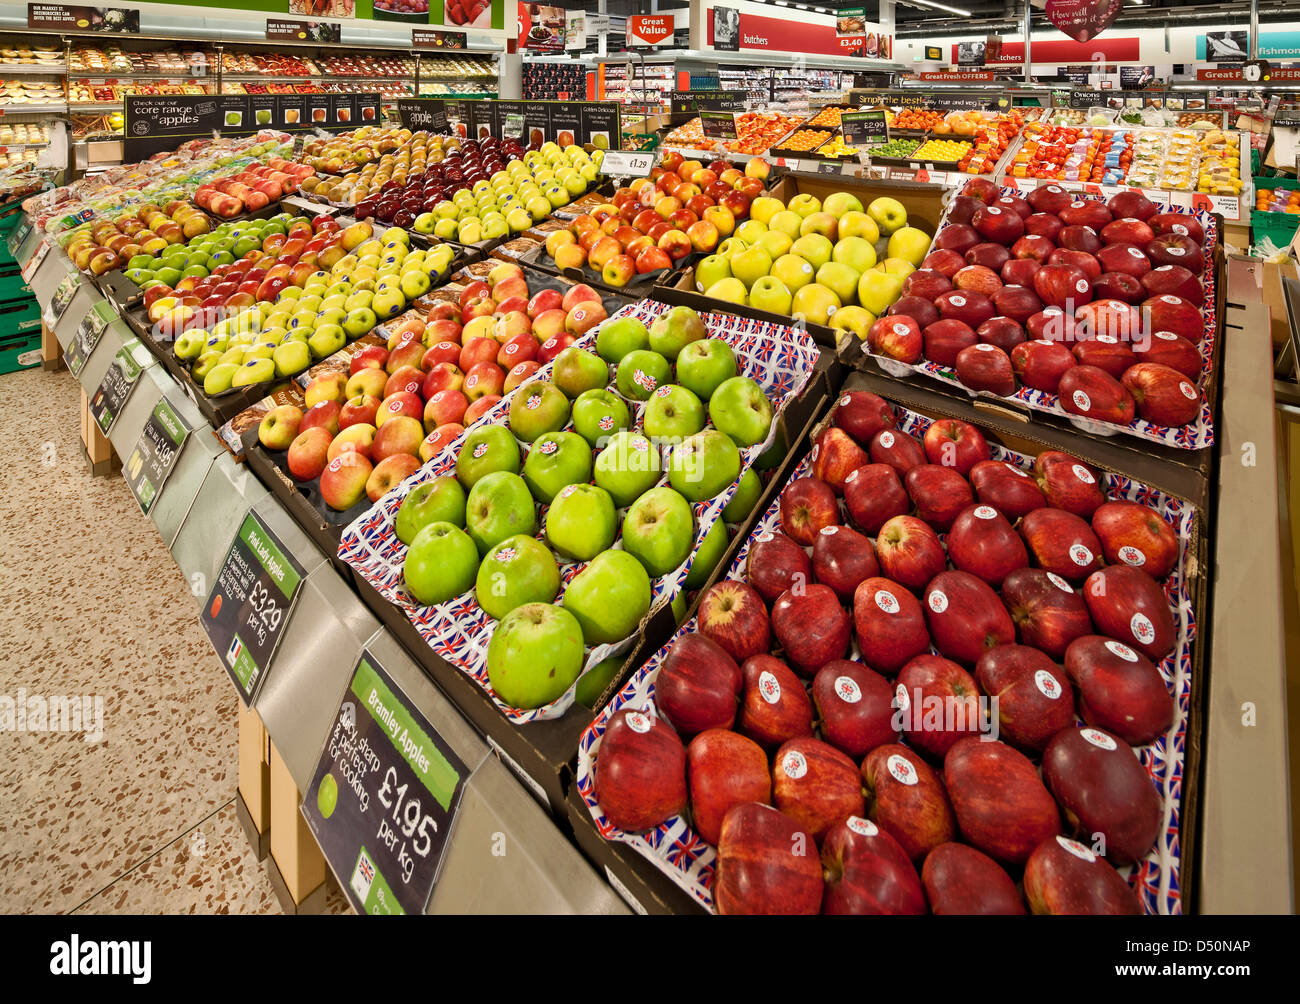 Display of apples at a supermarket - Stock Image